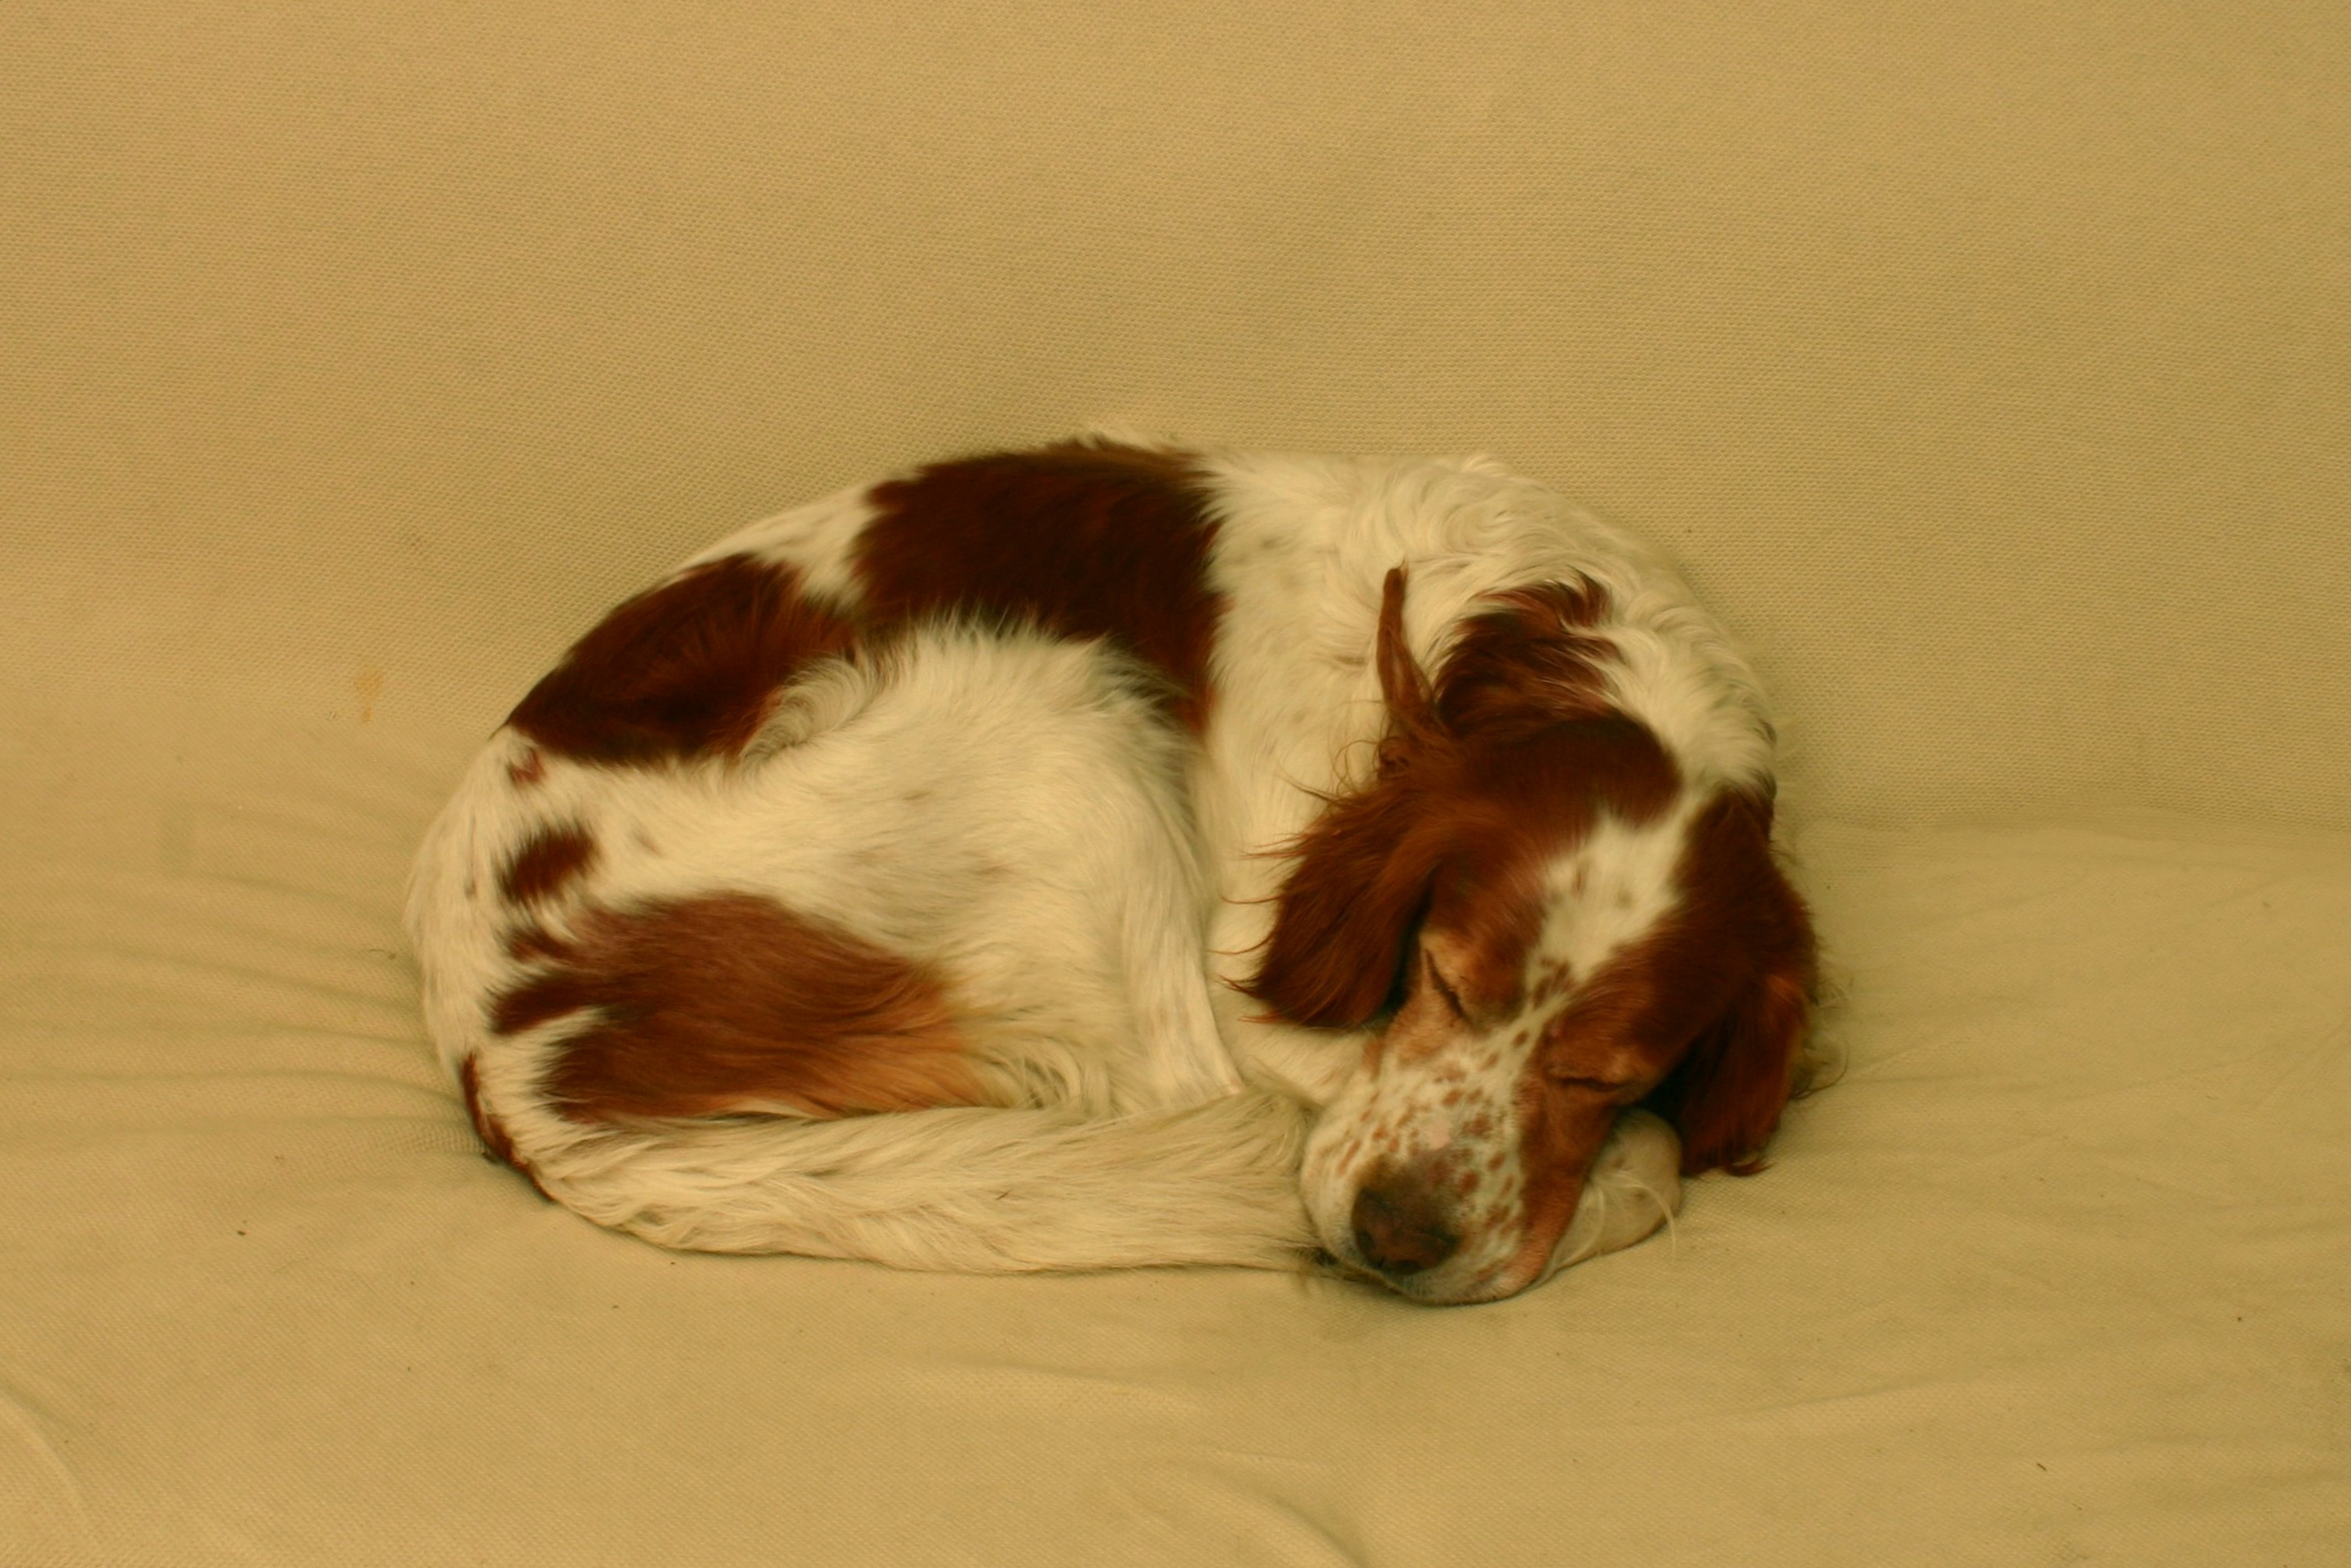 Irish Red and White Setter dog wallpaper